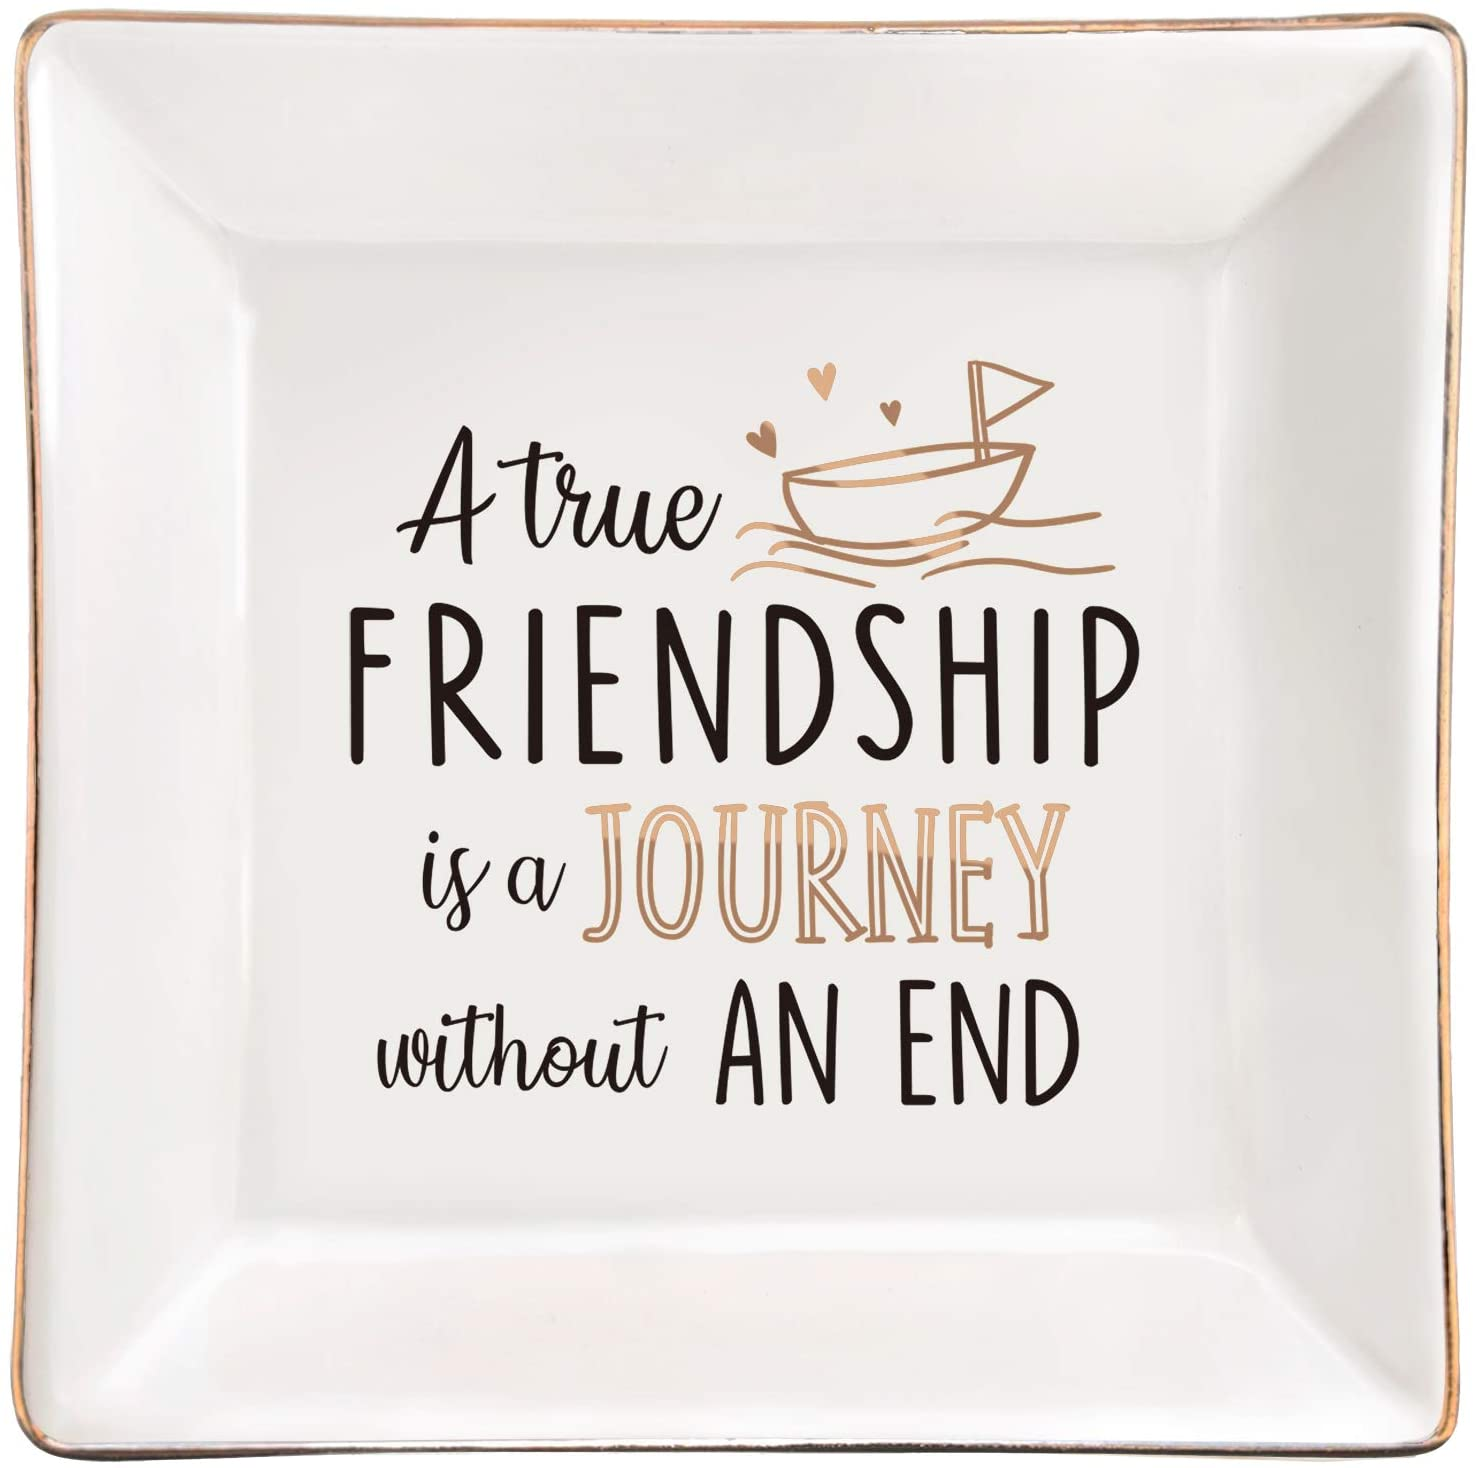 ElegantPark Friendship Gifts for Women Long Distance Friend Gifts Ceramic Jewelry Dish Friends Gifts Christmas Birthday Gifts for Friends Square Decorative Ring Dish